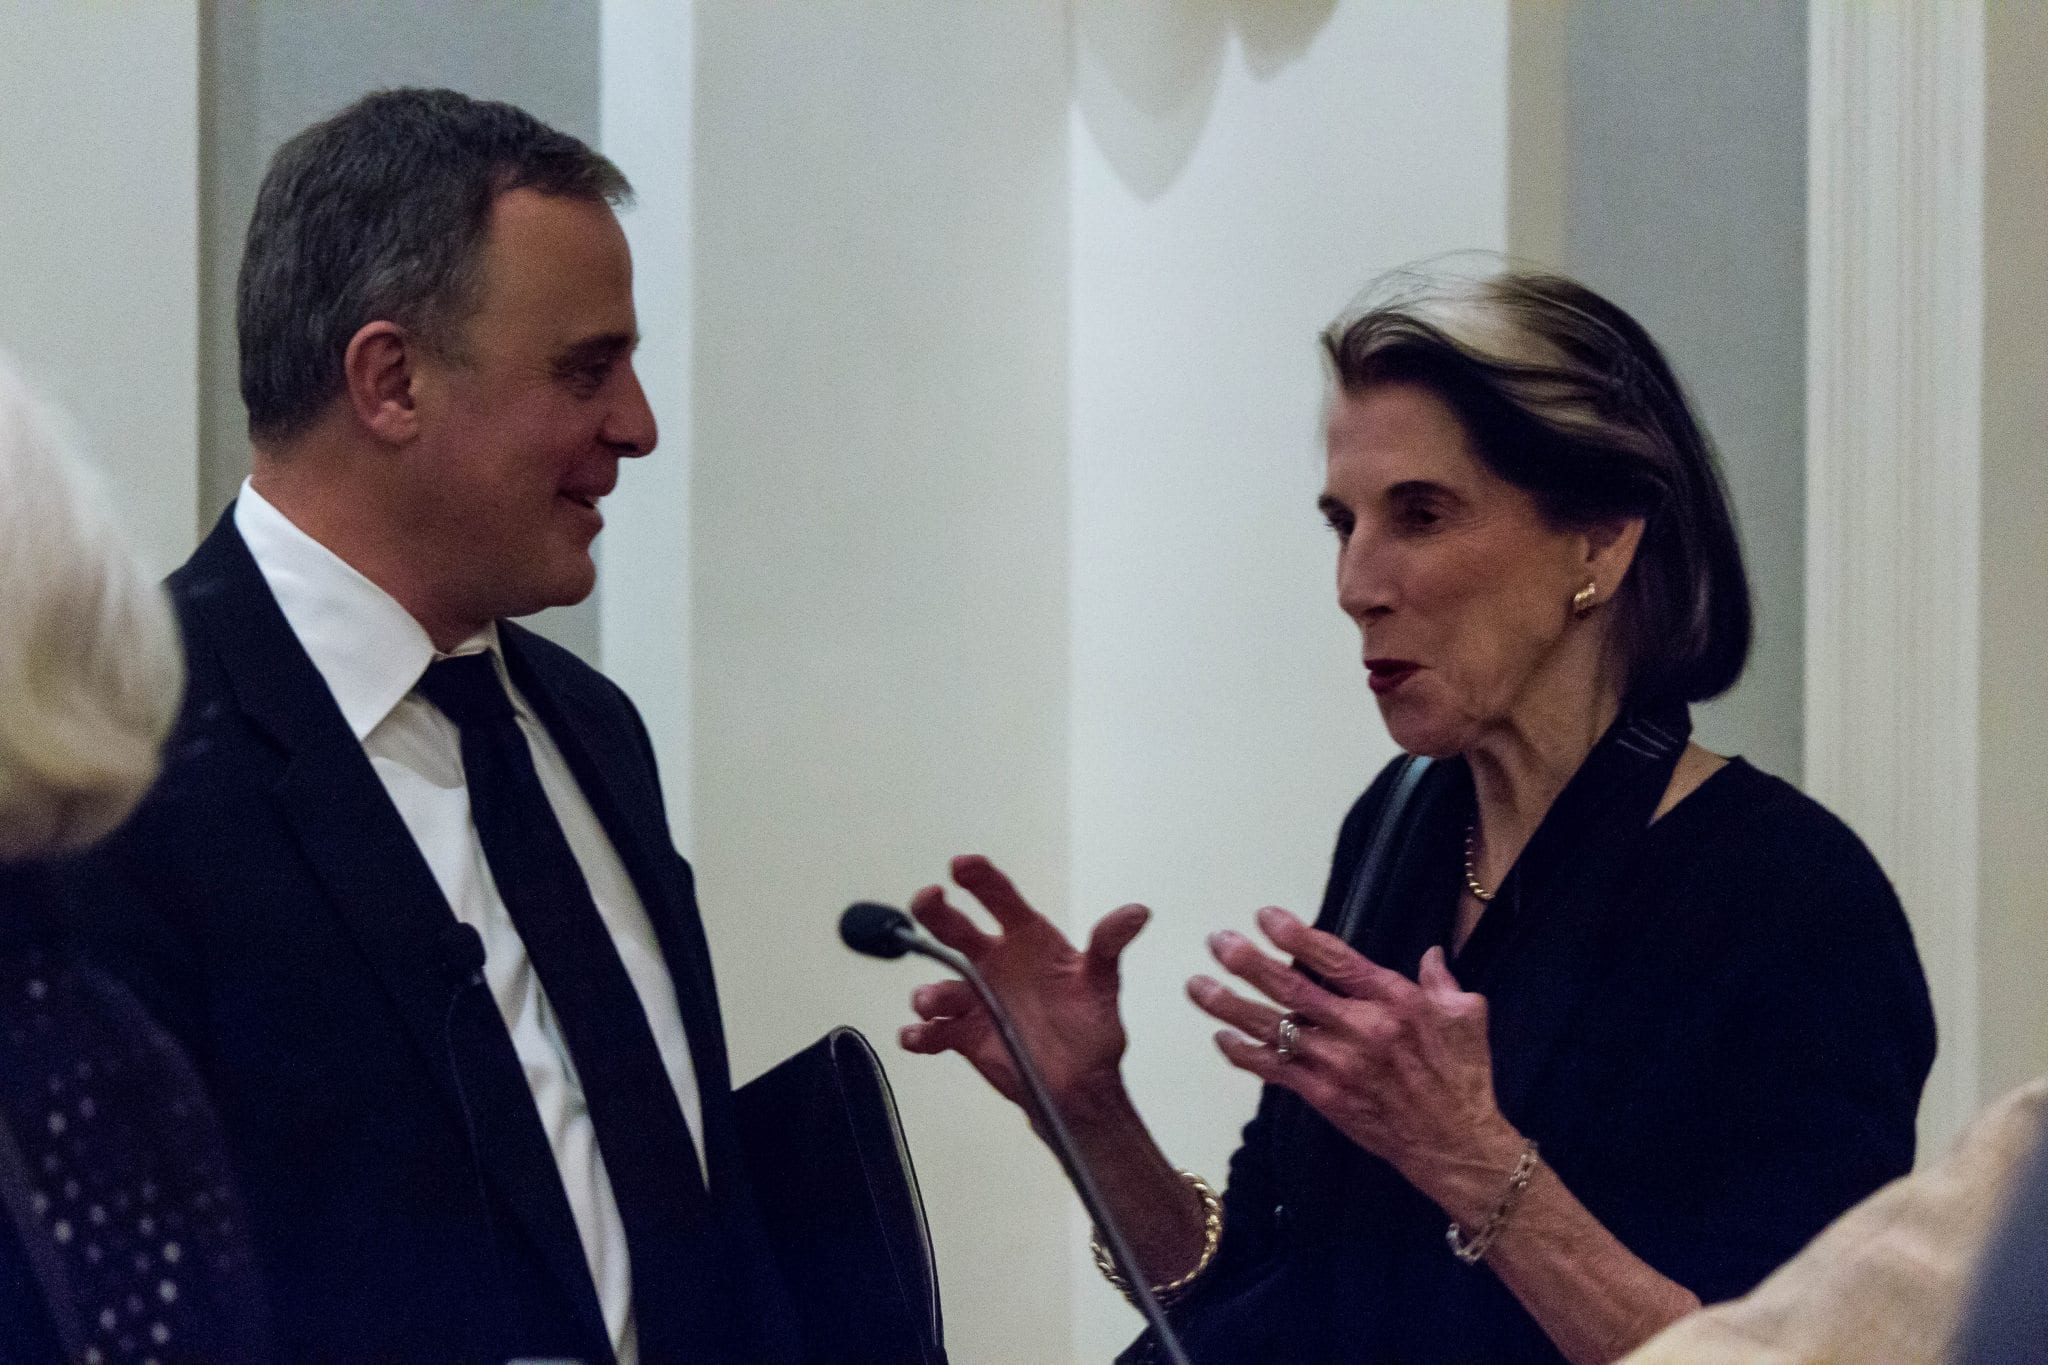 Rafal Rohozinski talks cyber policy with NCAFP member Edythe Holbrook after the program